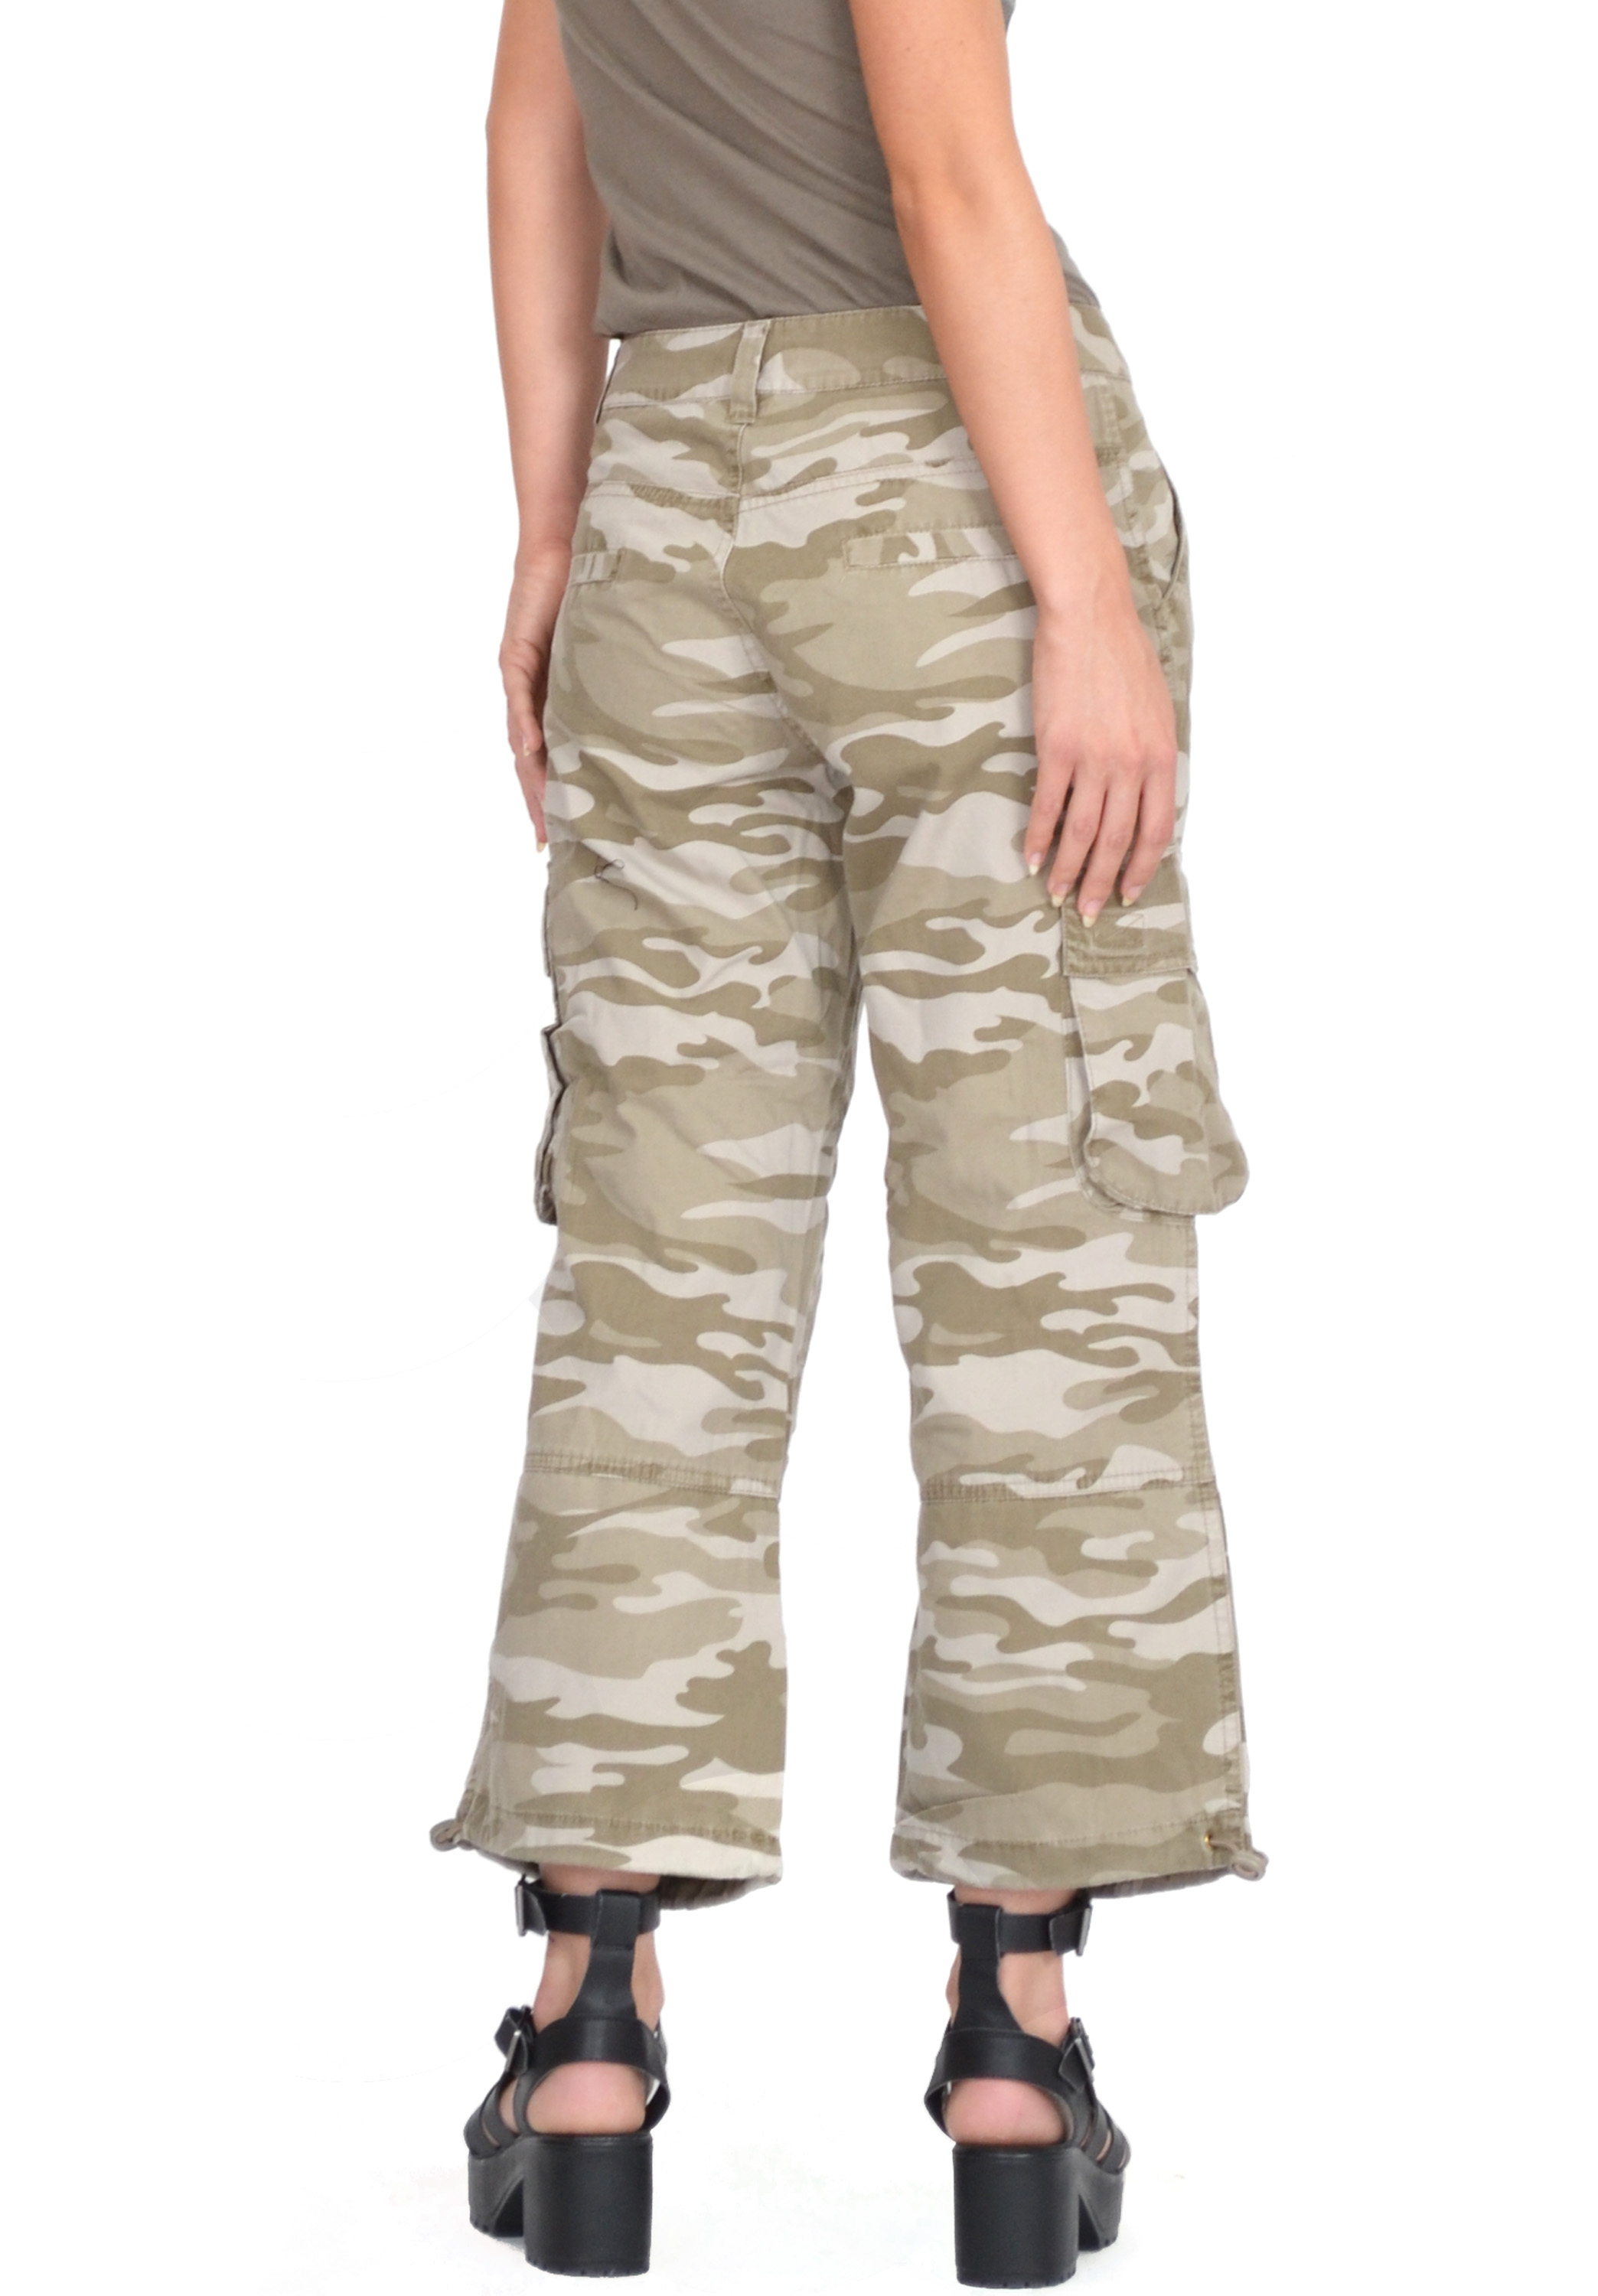 cliploadzone7nc.ga provides brown combat trousers items from China top selected Men's Pants, Men's Clothing, Apparel suppliers at wholesale prices with worldwide delivery. You can find trouser, Men brown combat trousers free shipping, brown combat trousers and view 18 brown combat trousers reviews to help you choose.